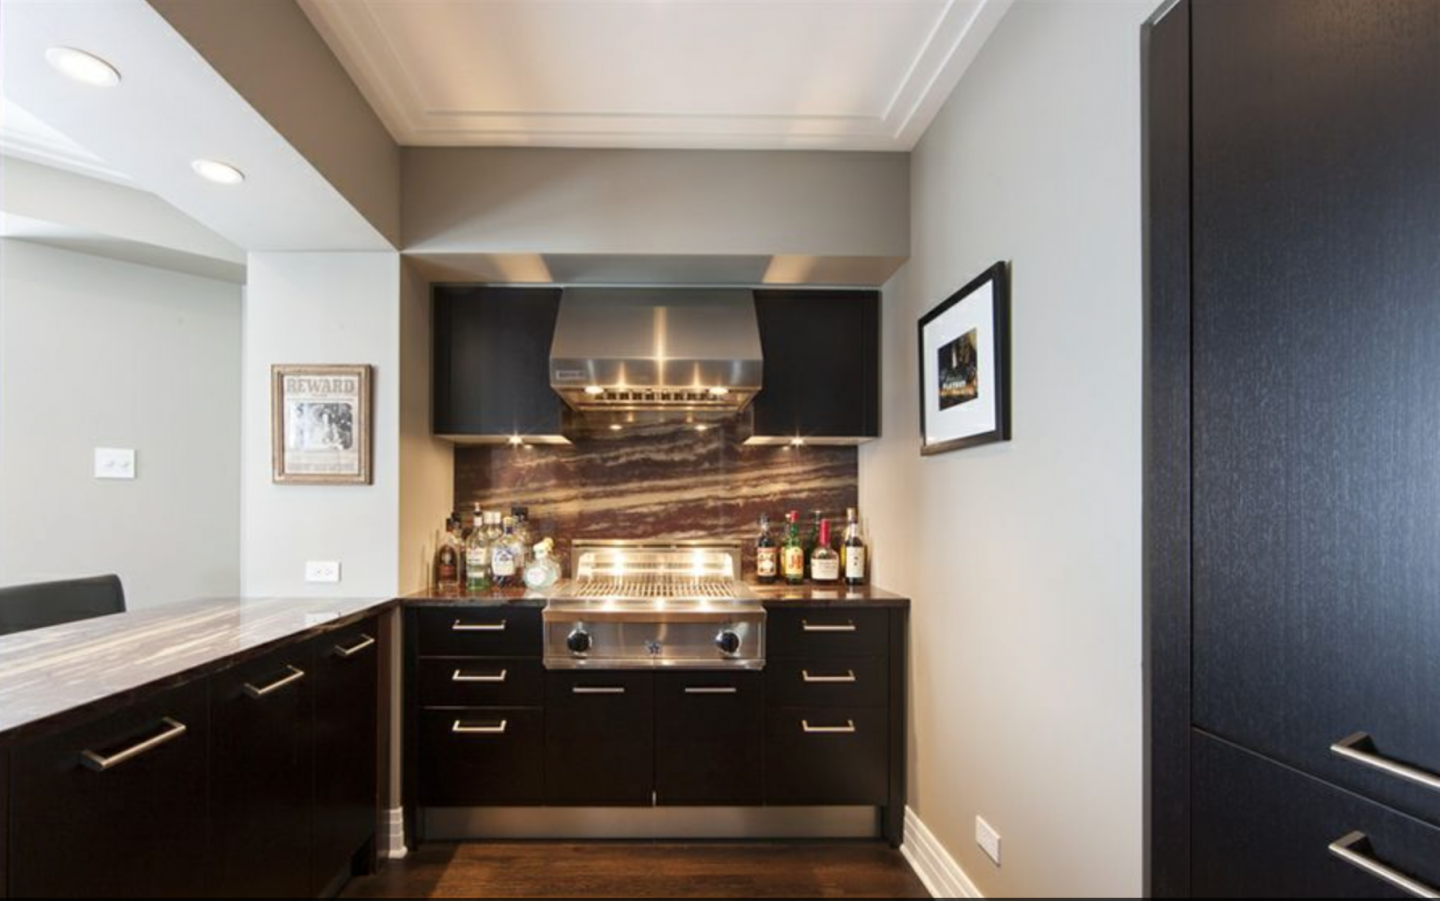 Vaughn's Chicago penthouse features two gourmet kitchens with high-end appliances.